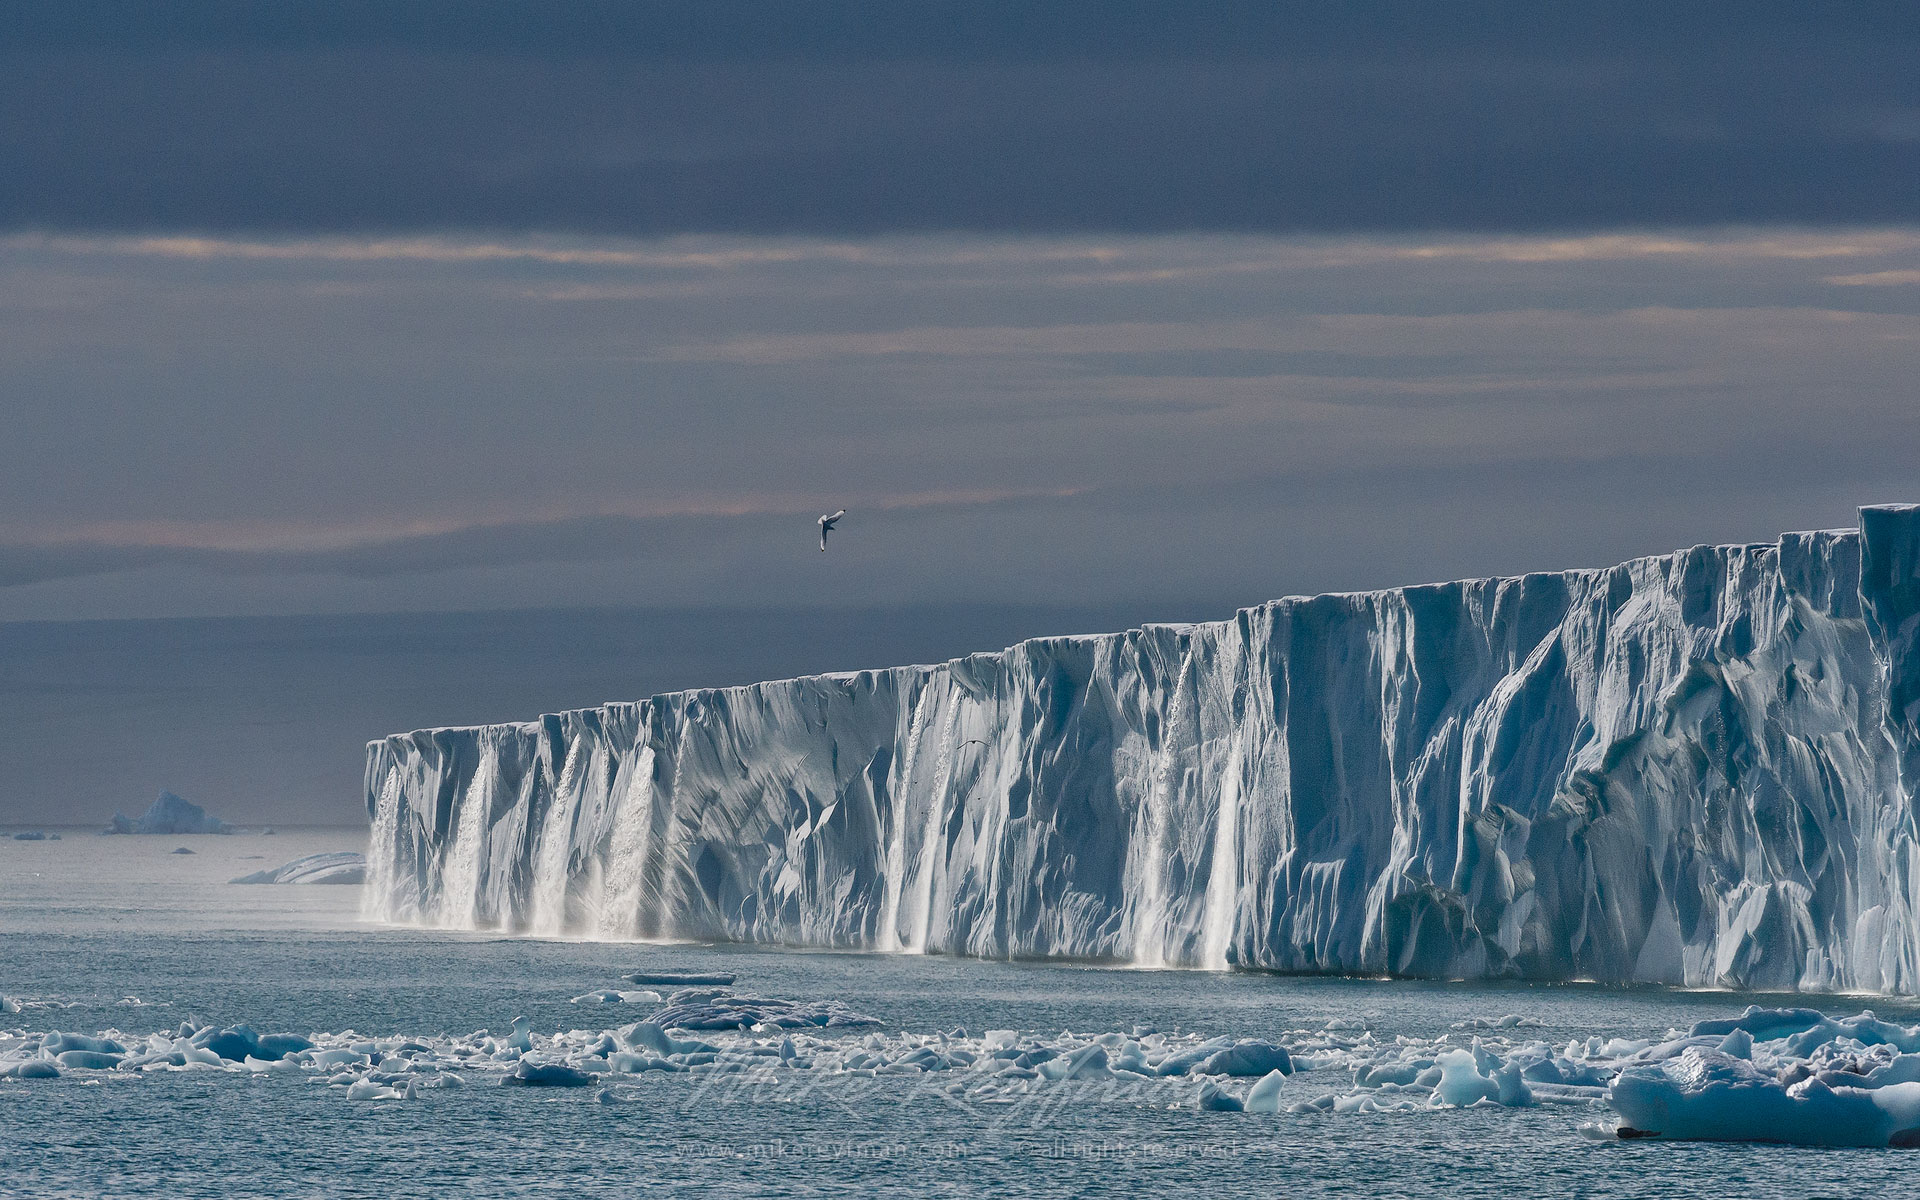 Meltwater waterfalls flowing off the Austfonna Ice Cap. Svalbard (Spitsbergen) Archipelago, Norway. - Arctic-Landscape-Svalbard-Spitsbergen-Norway - Mike Reyfman Photography